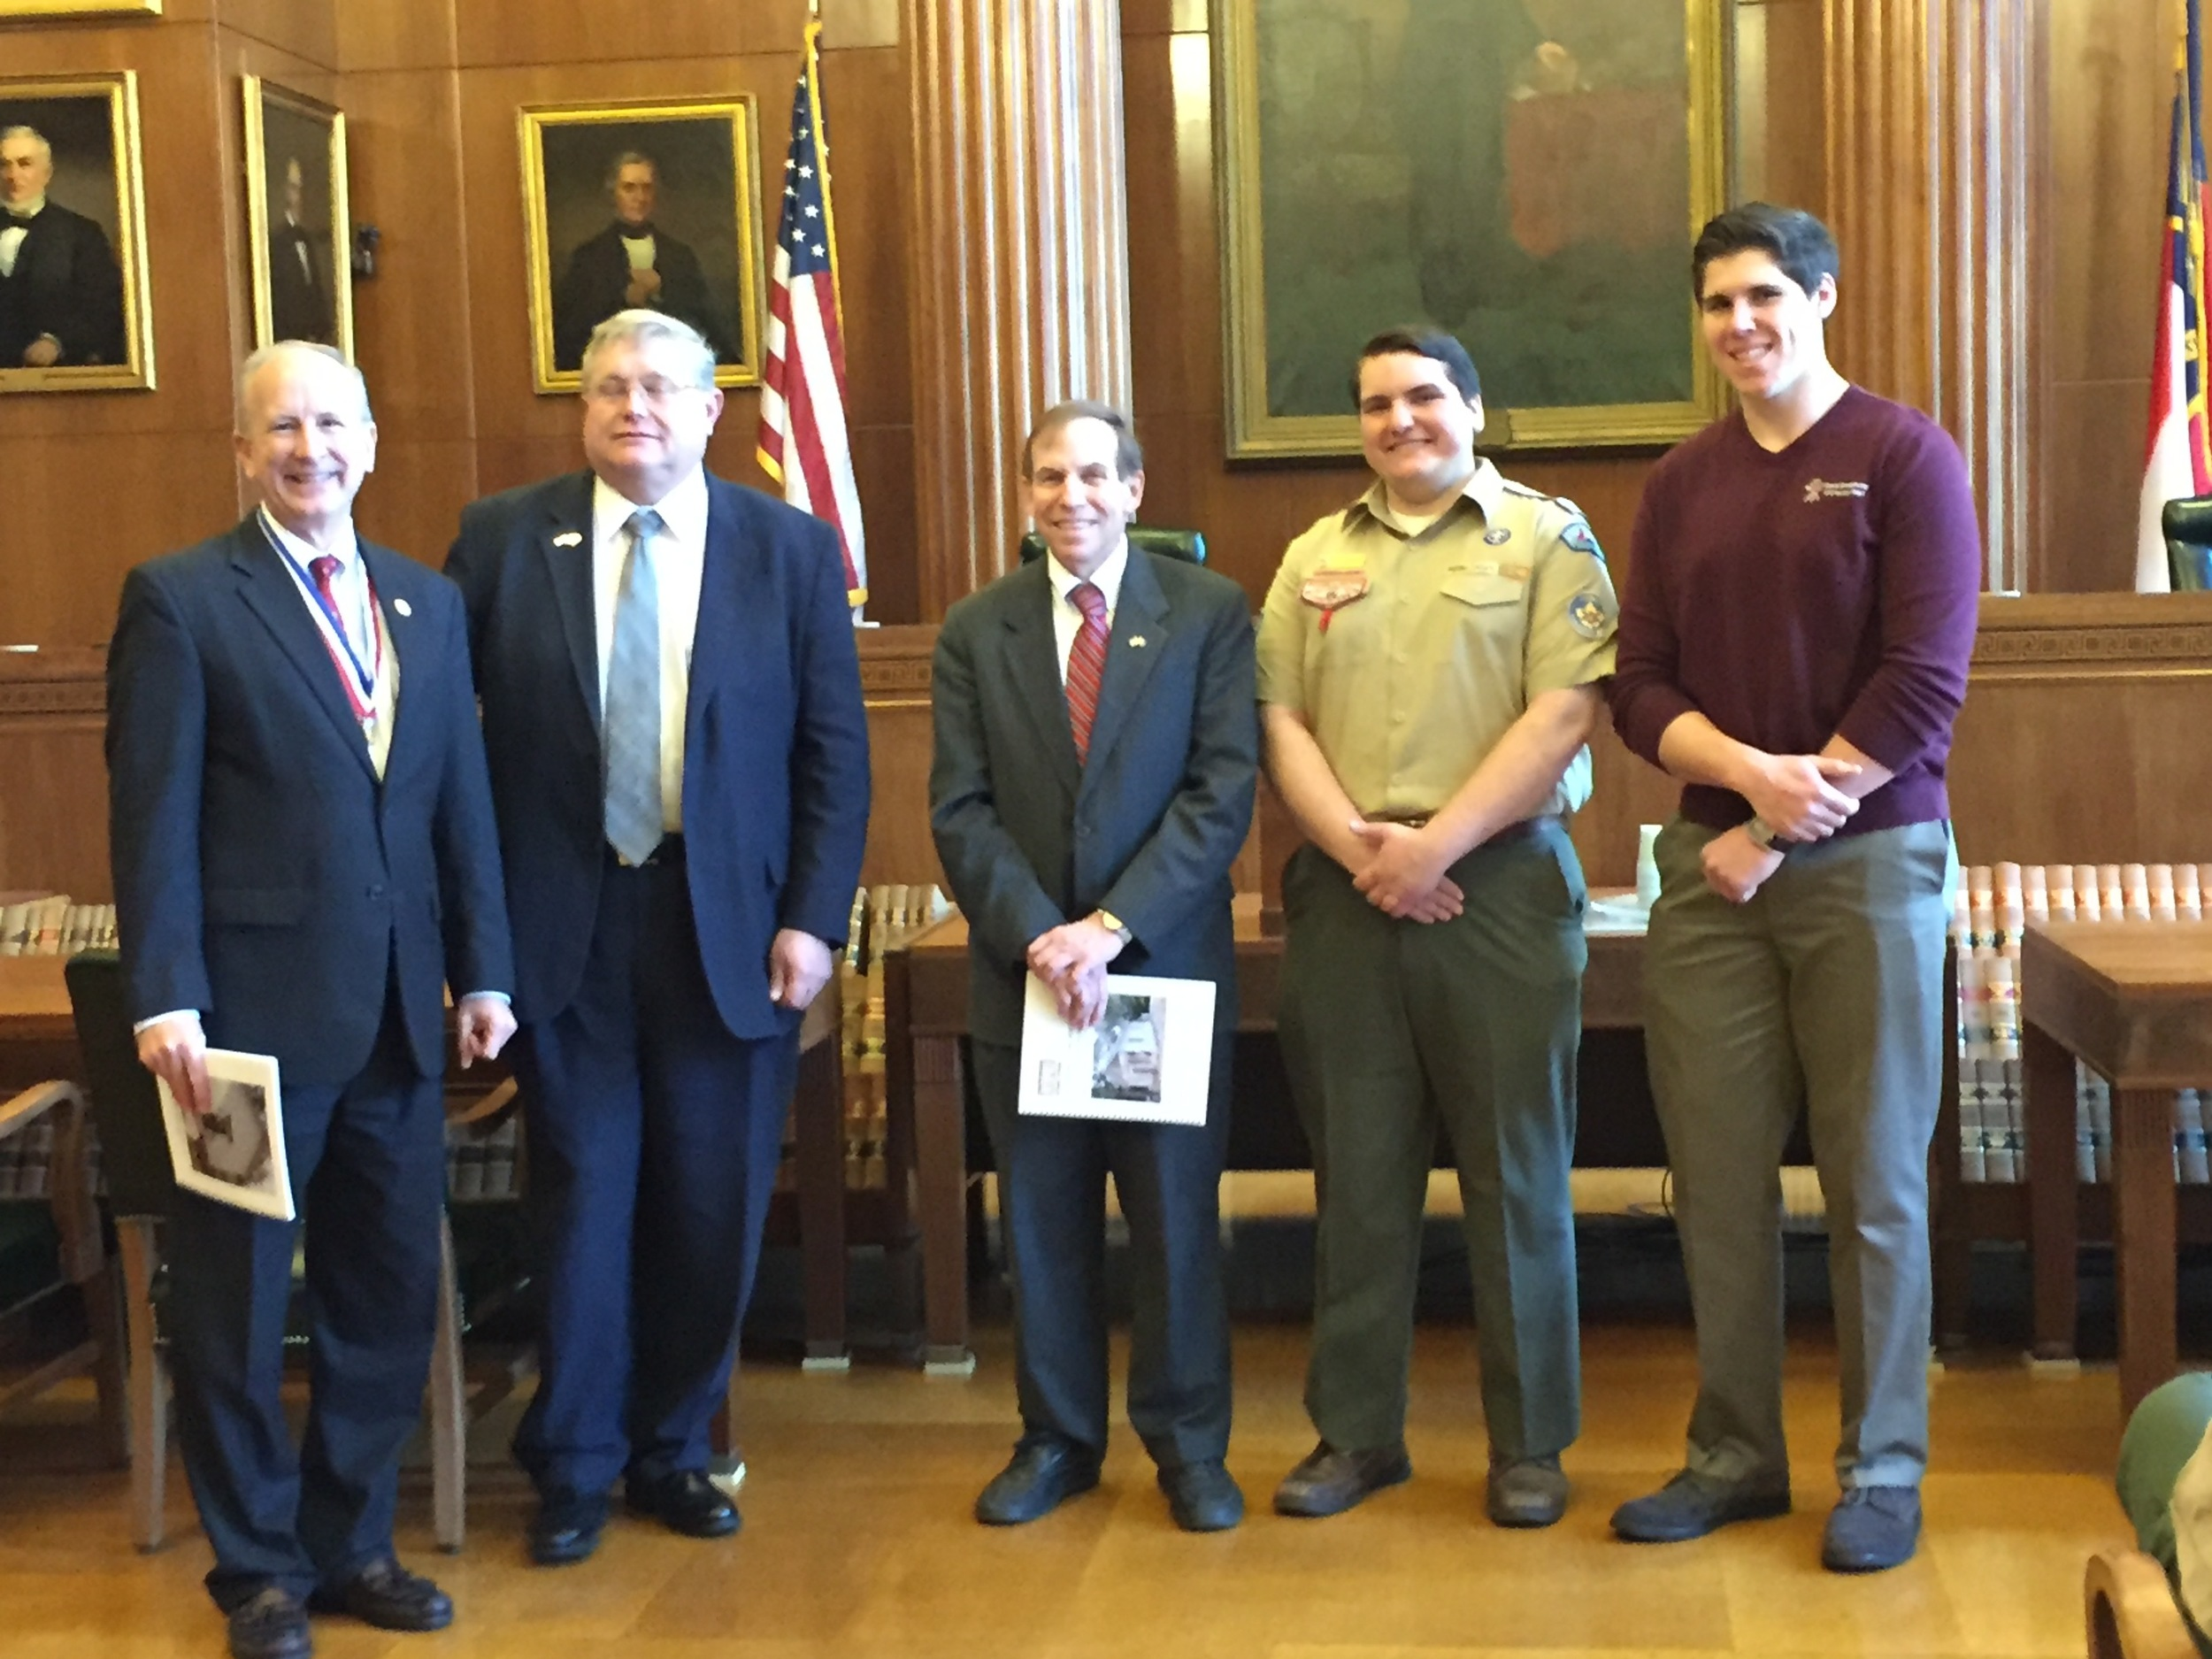 Addressing Boy Scouts and receiving copy of Annual Report to Governor, February 29, 2016.